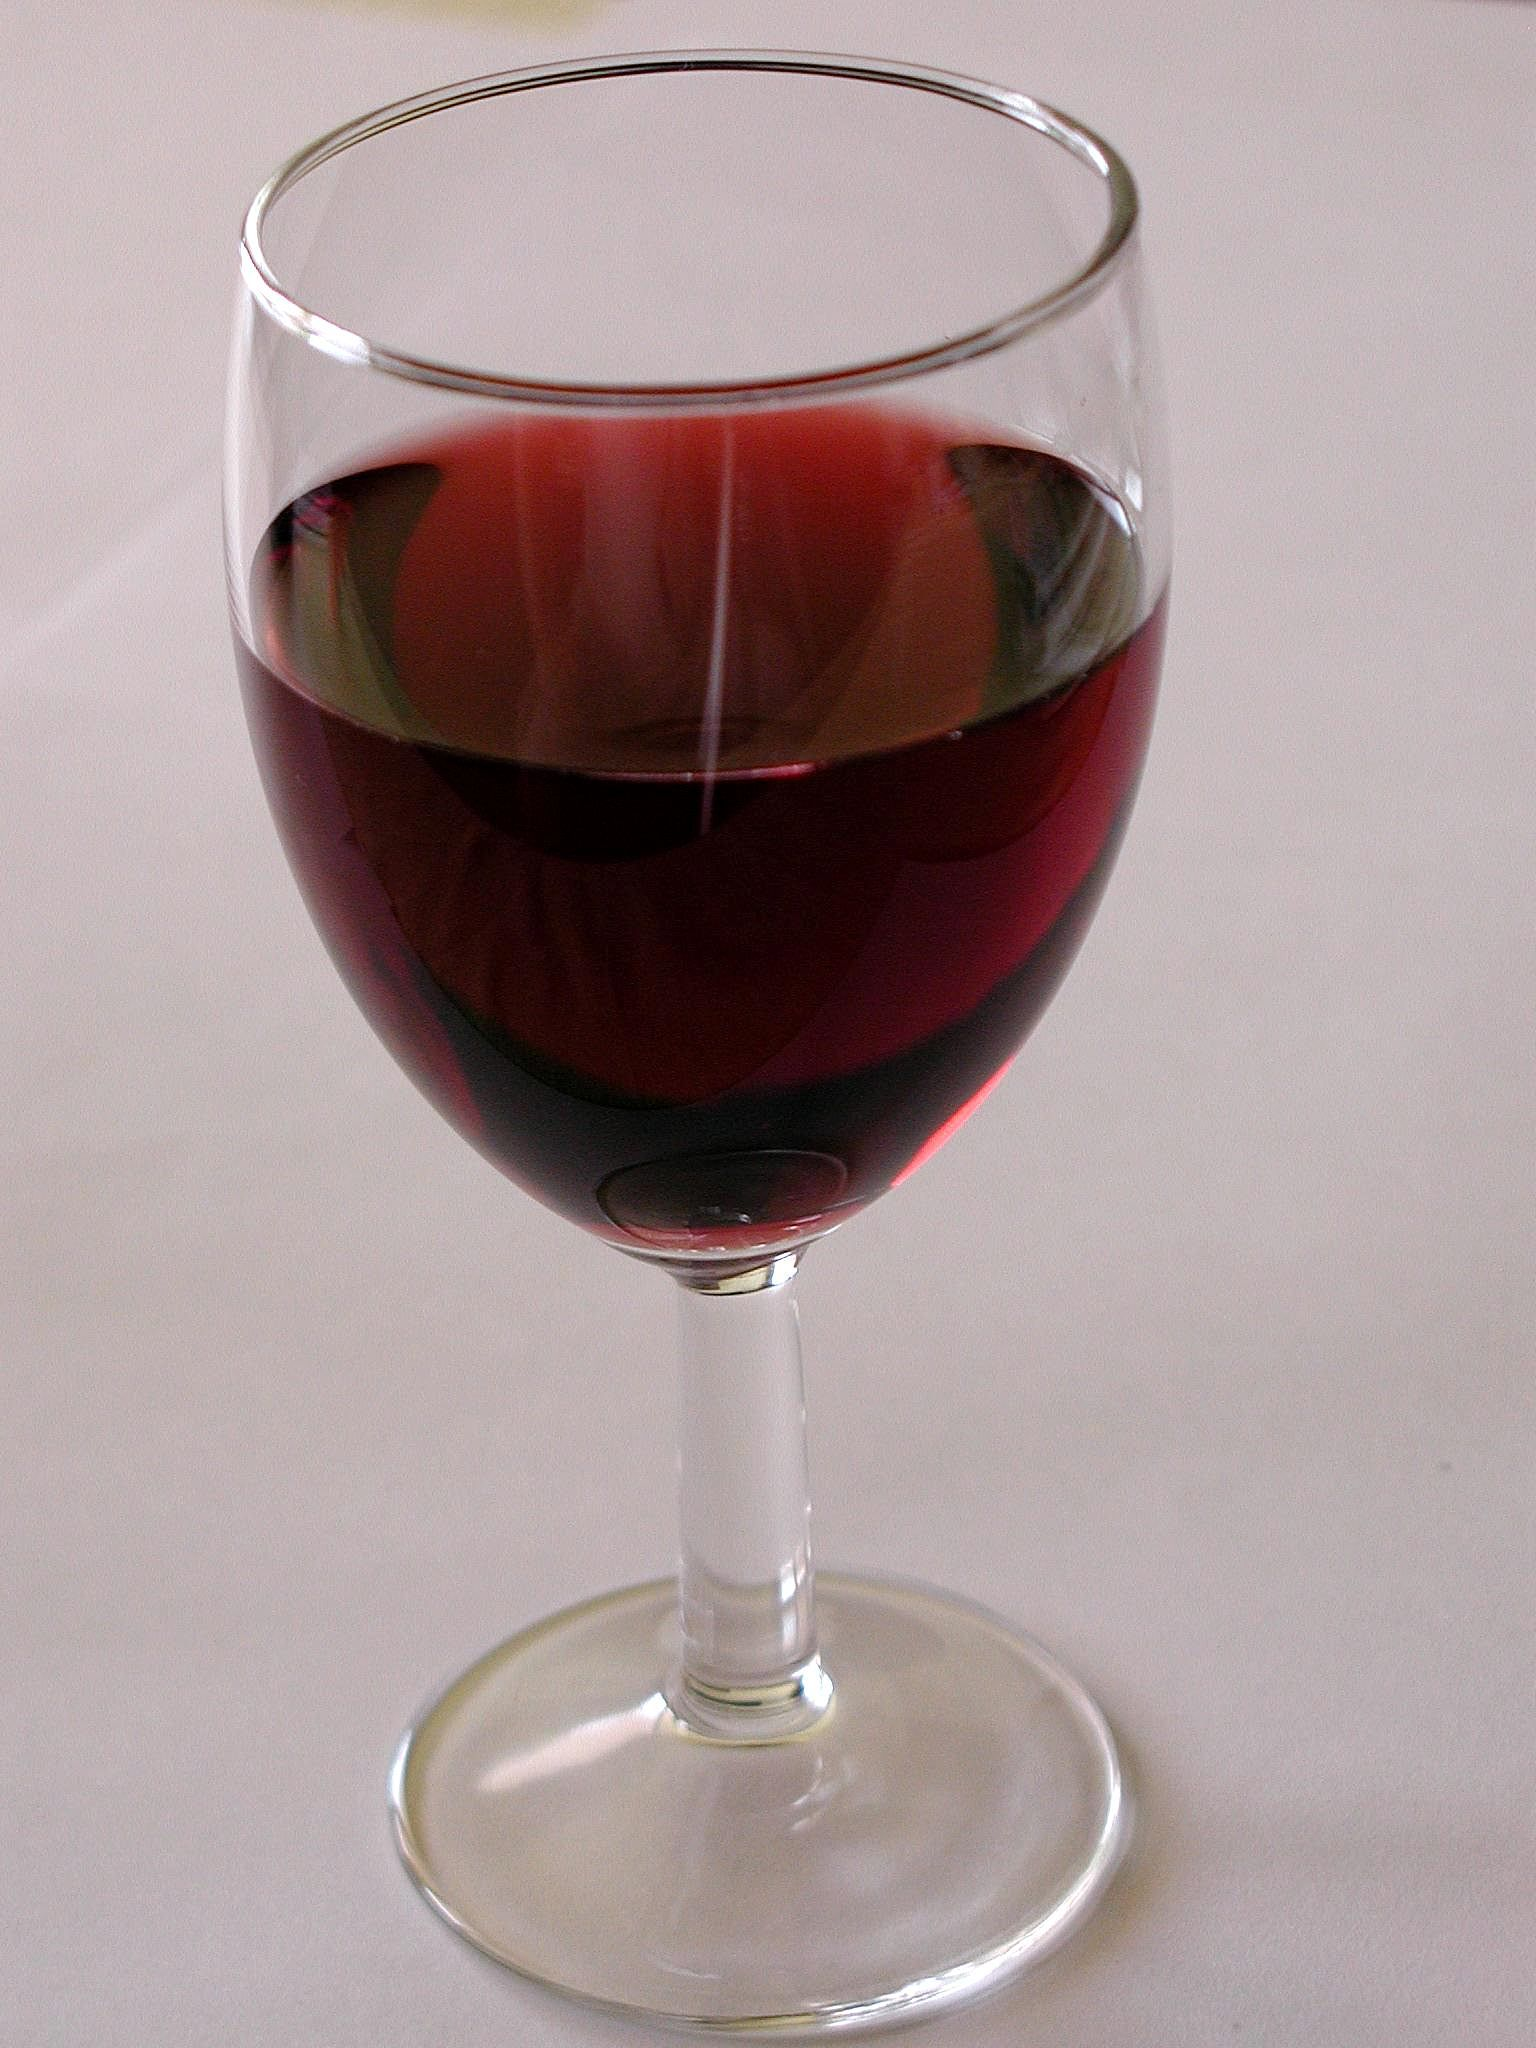 Fabulous Wine Glass On Table 1536 x 2048 · 295 kB · jpeg